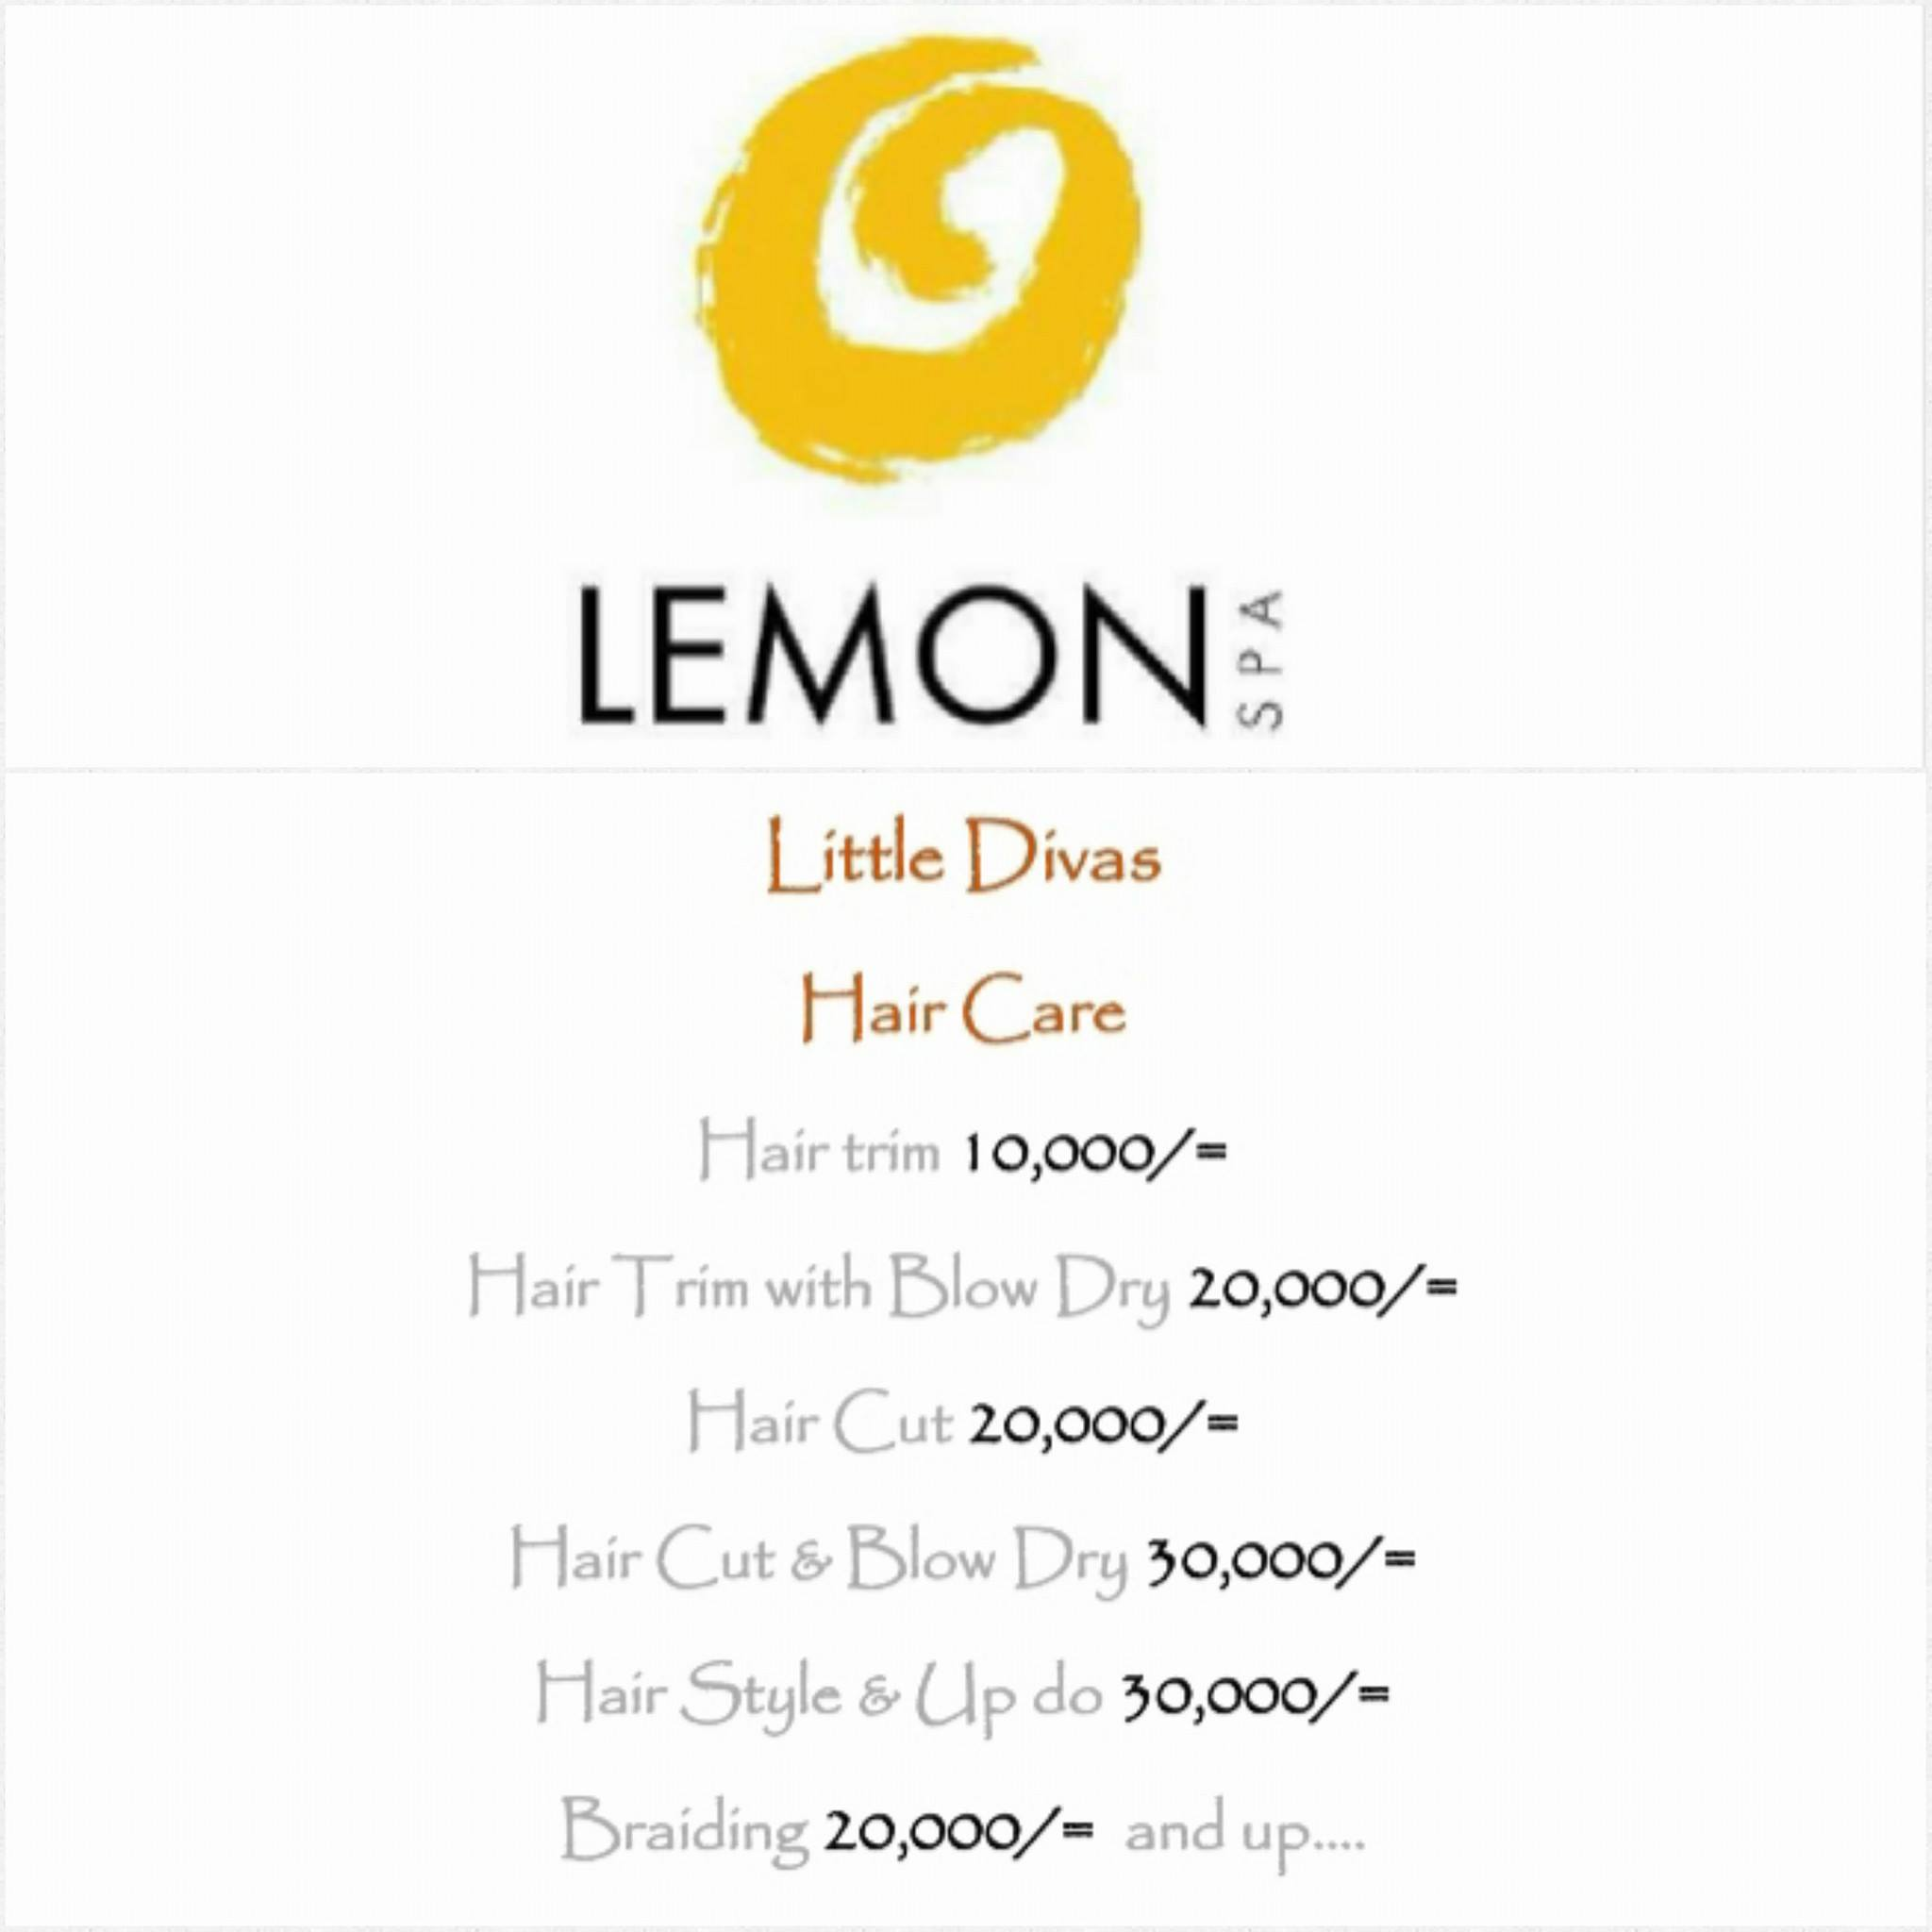 Lemon Spa Menu for Kids